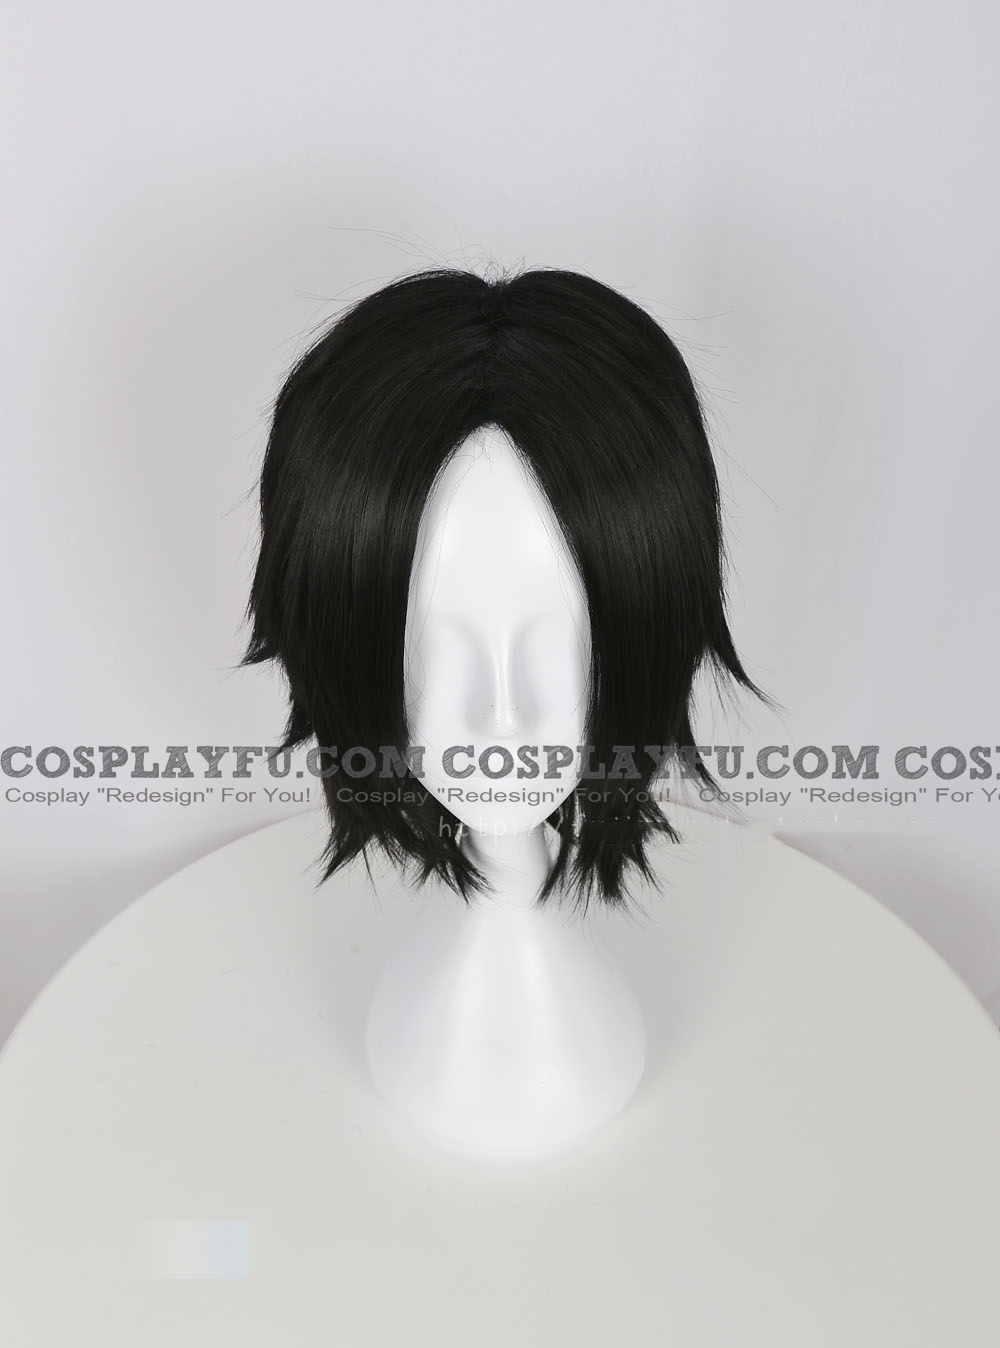 Portgas D. Ace wig from One Piece